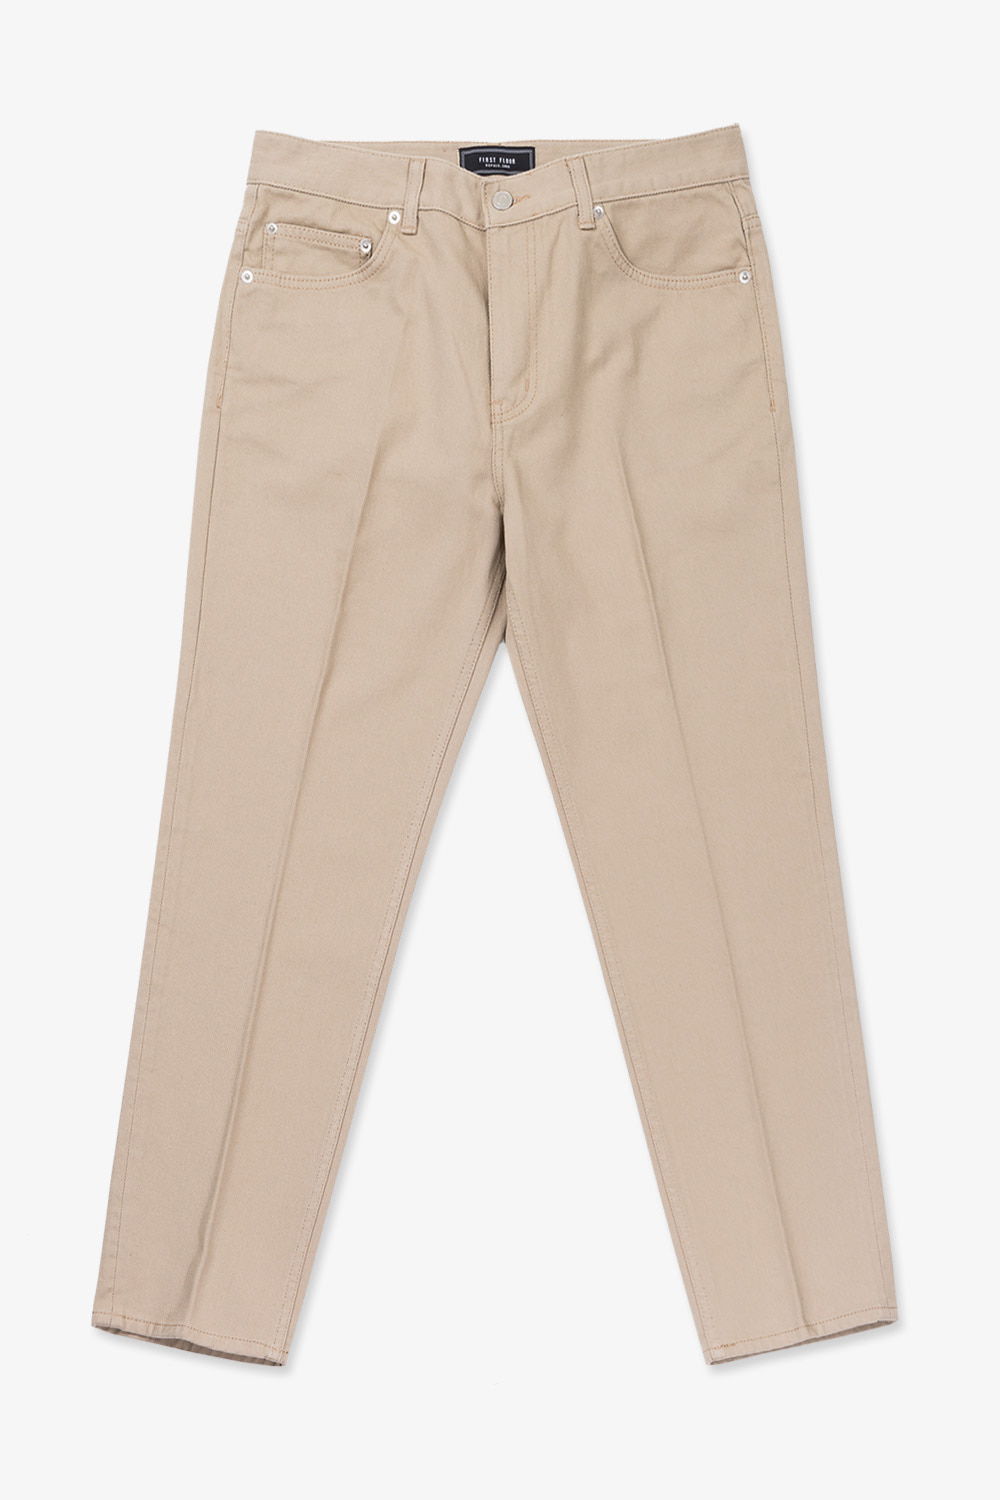 EASYGOING CROP PANTS (BEIGE)